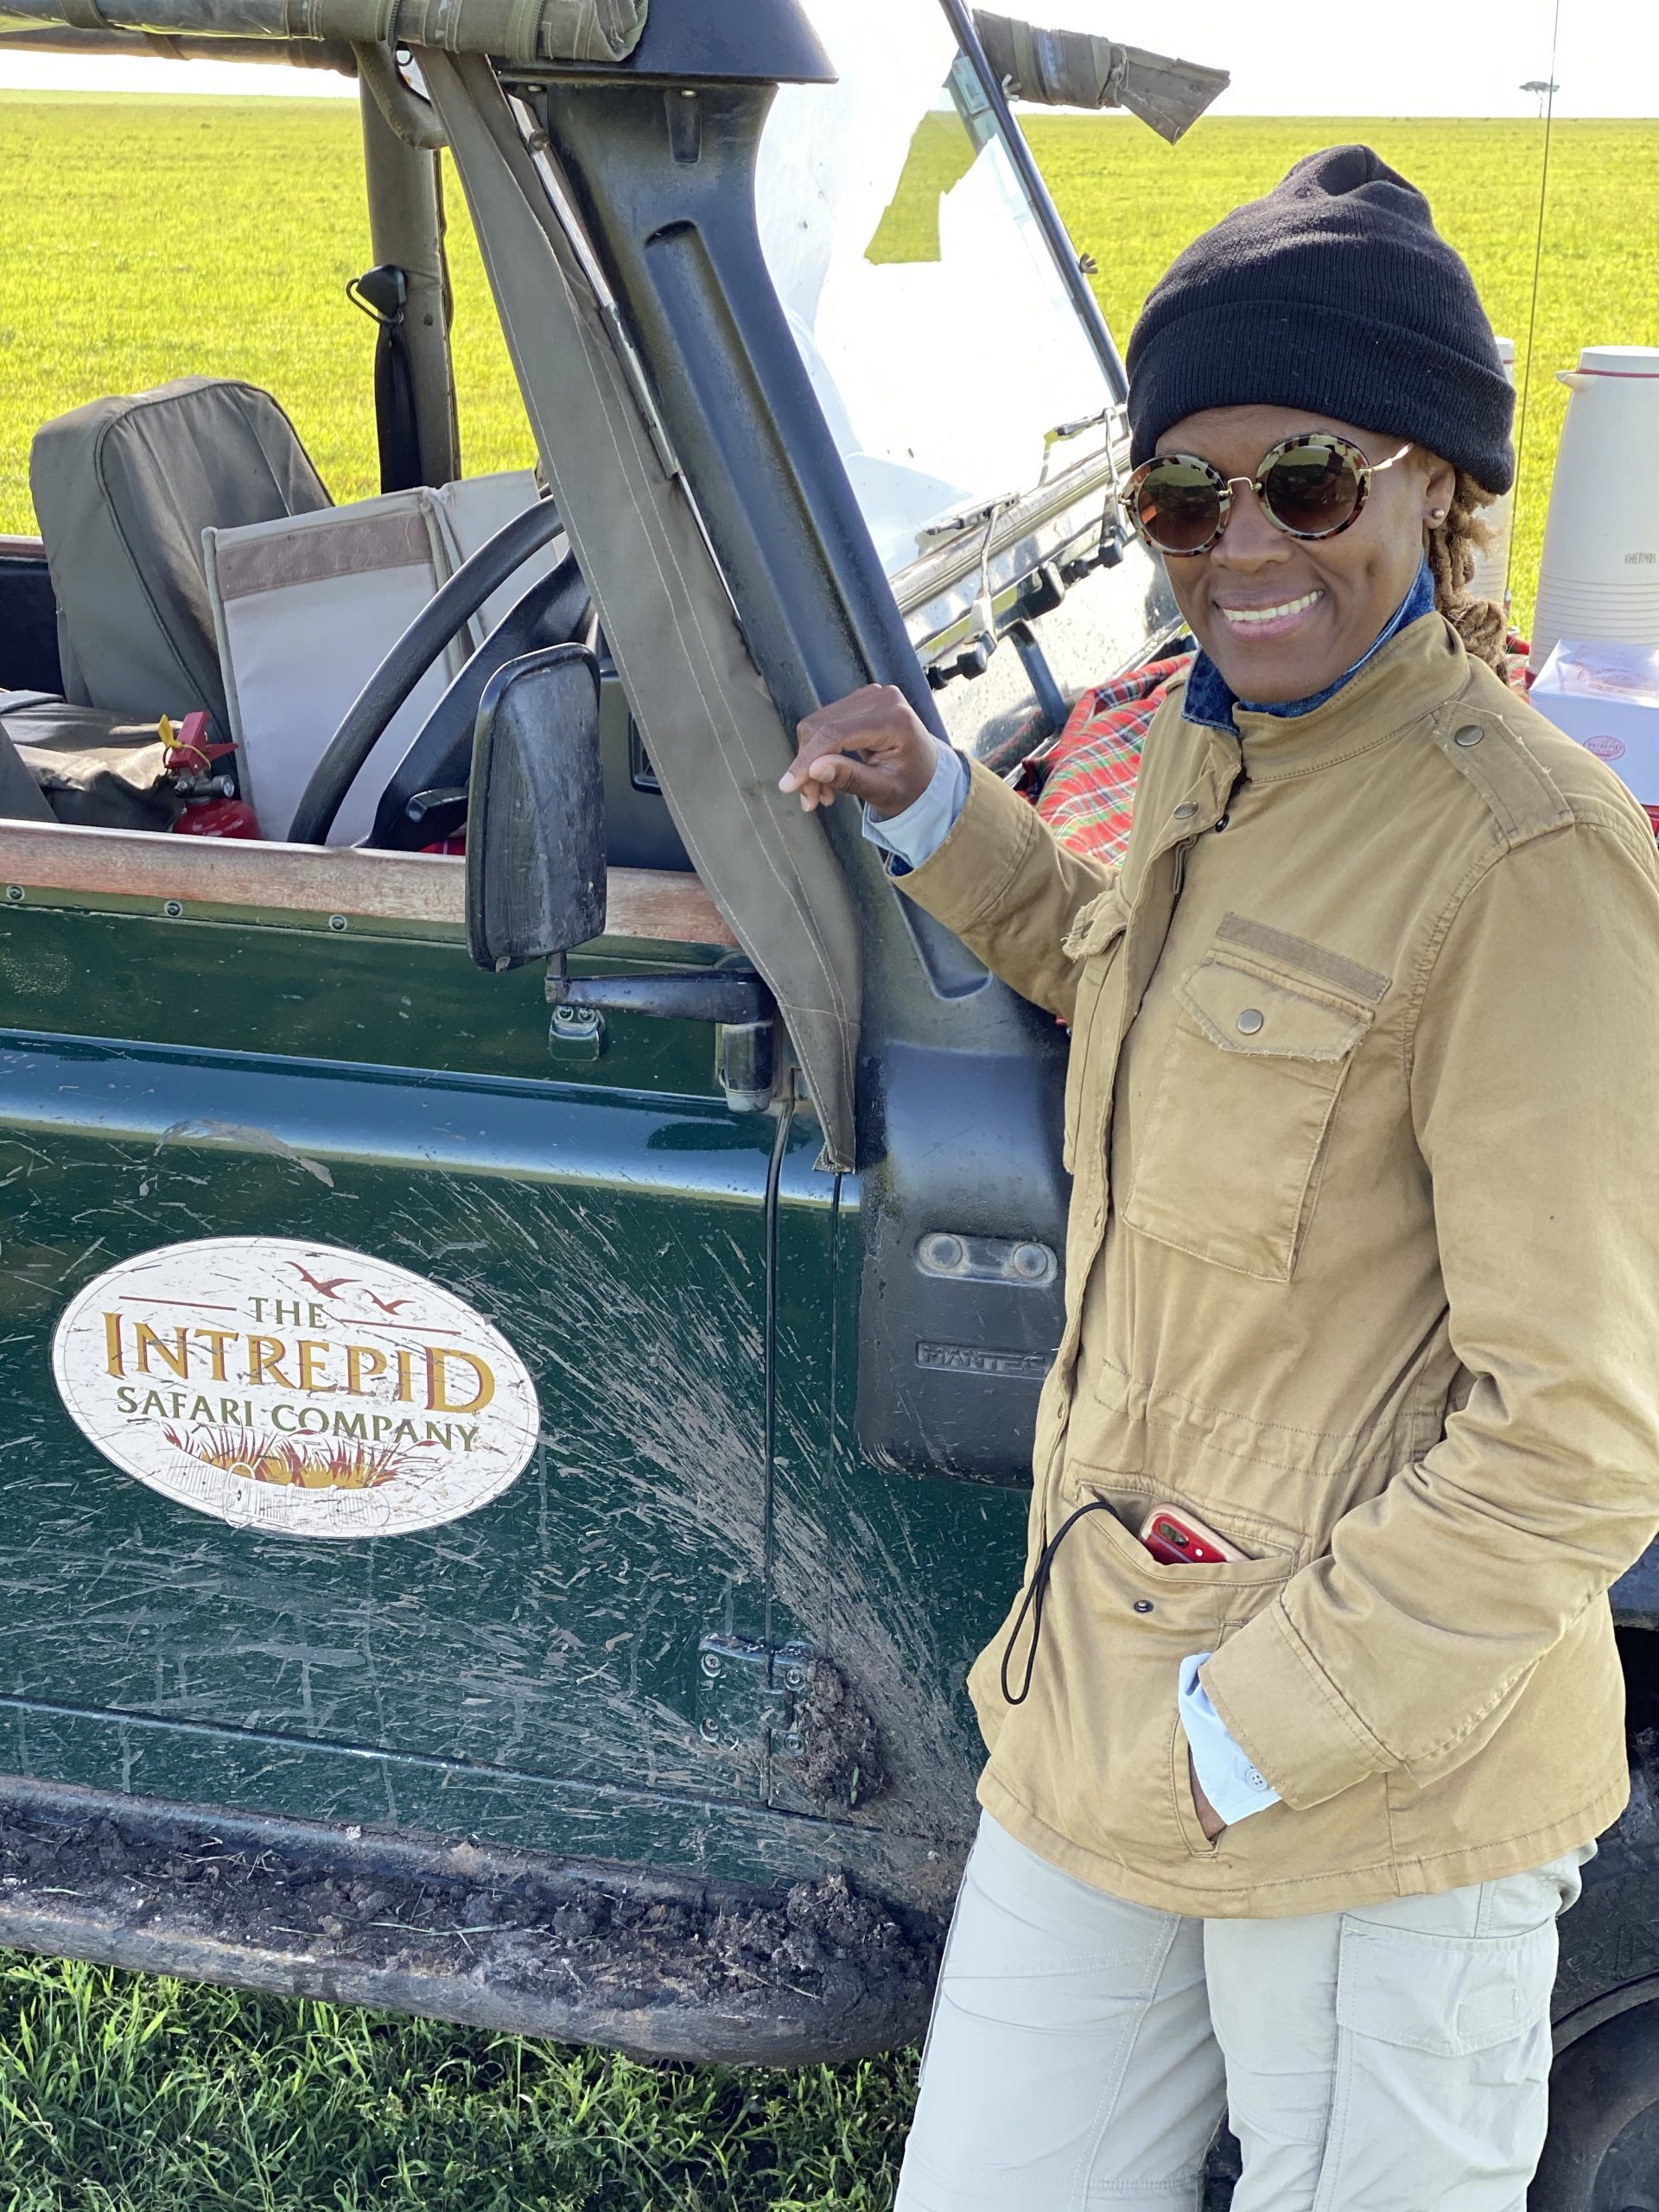 woman with cap posing beside muddy jeep